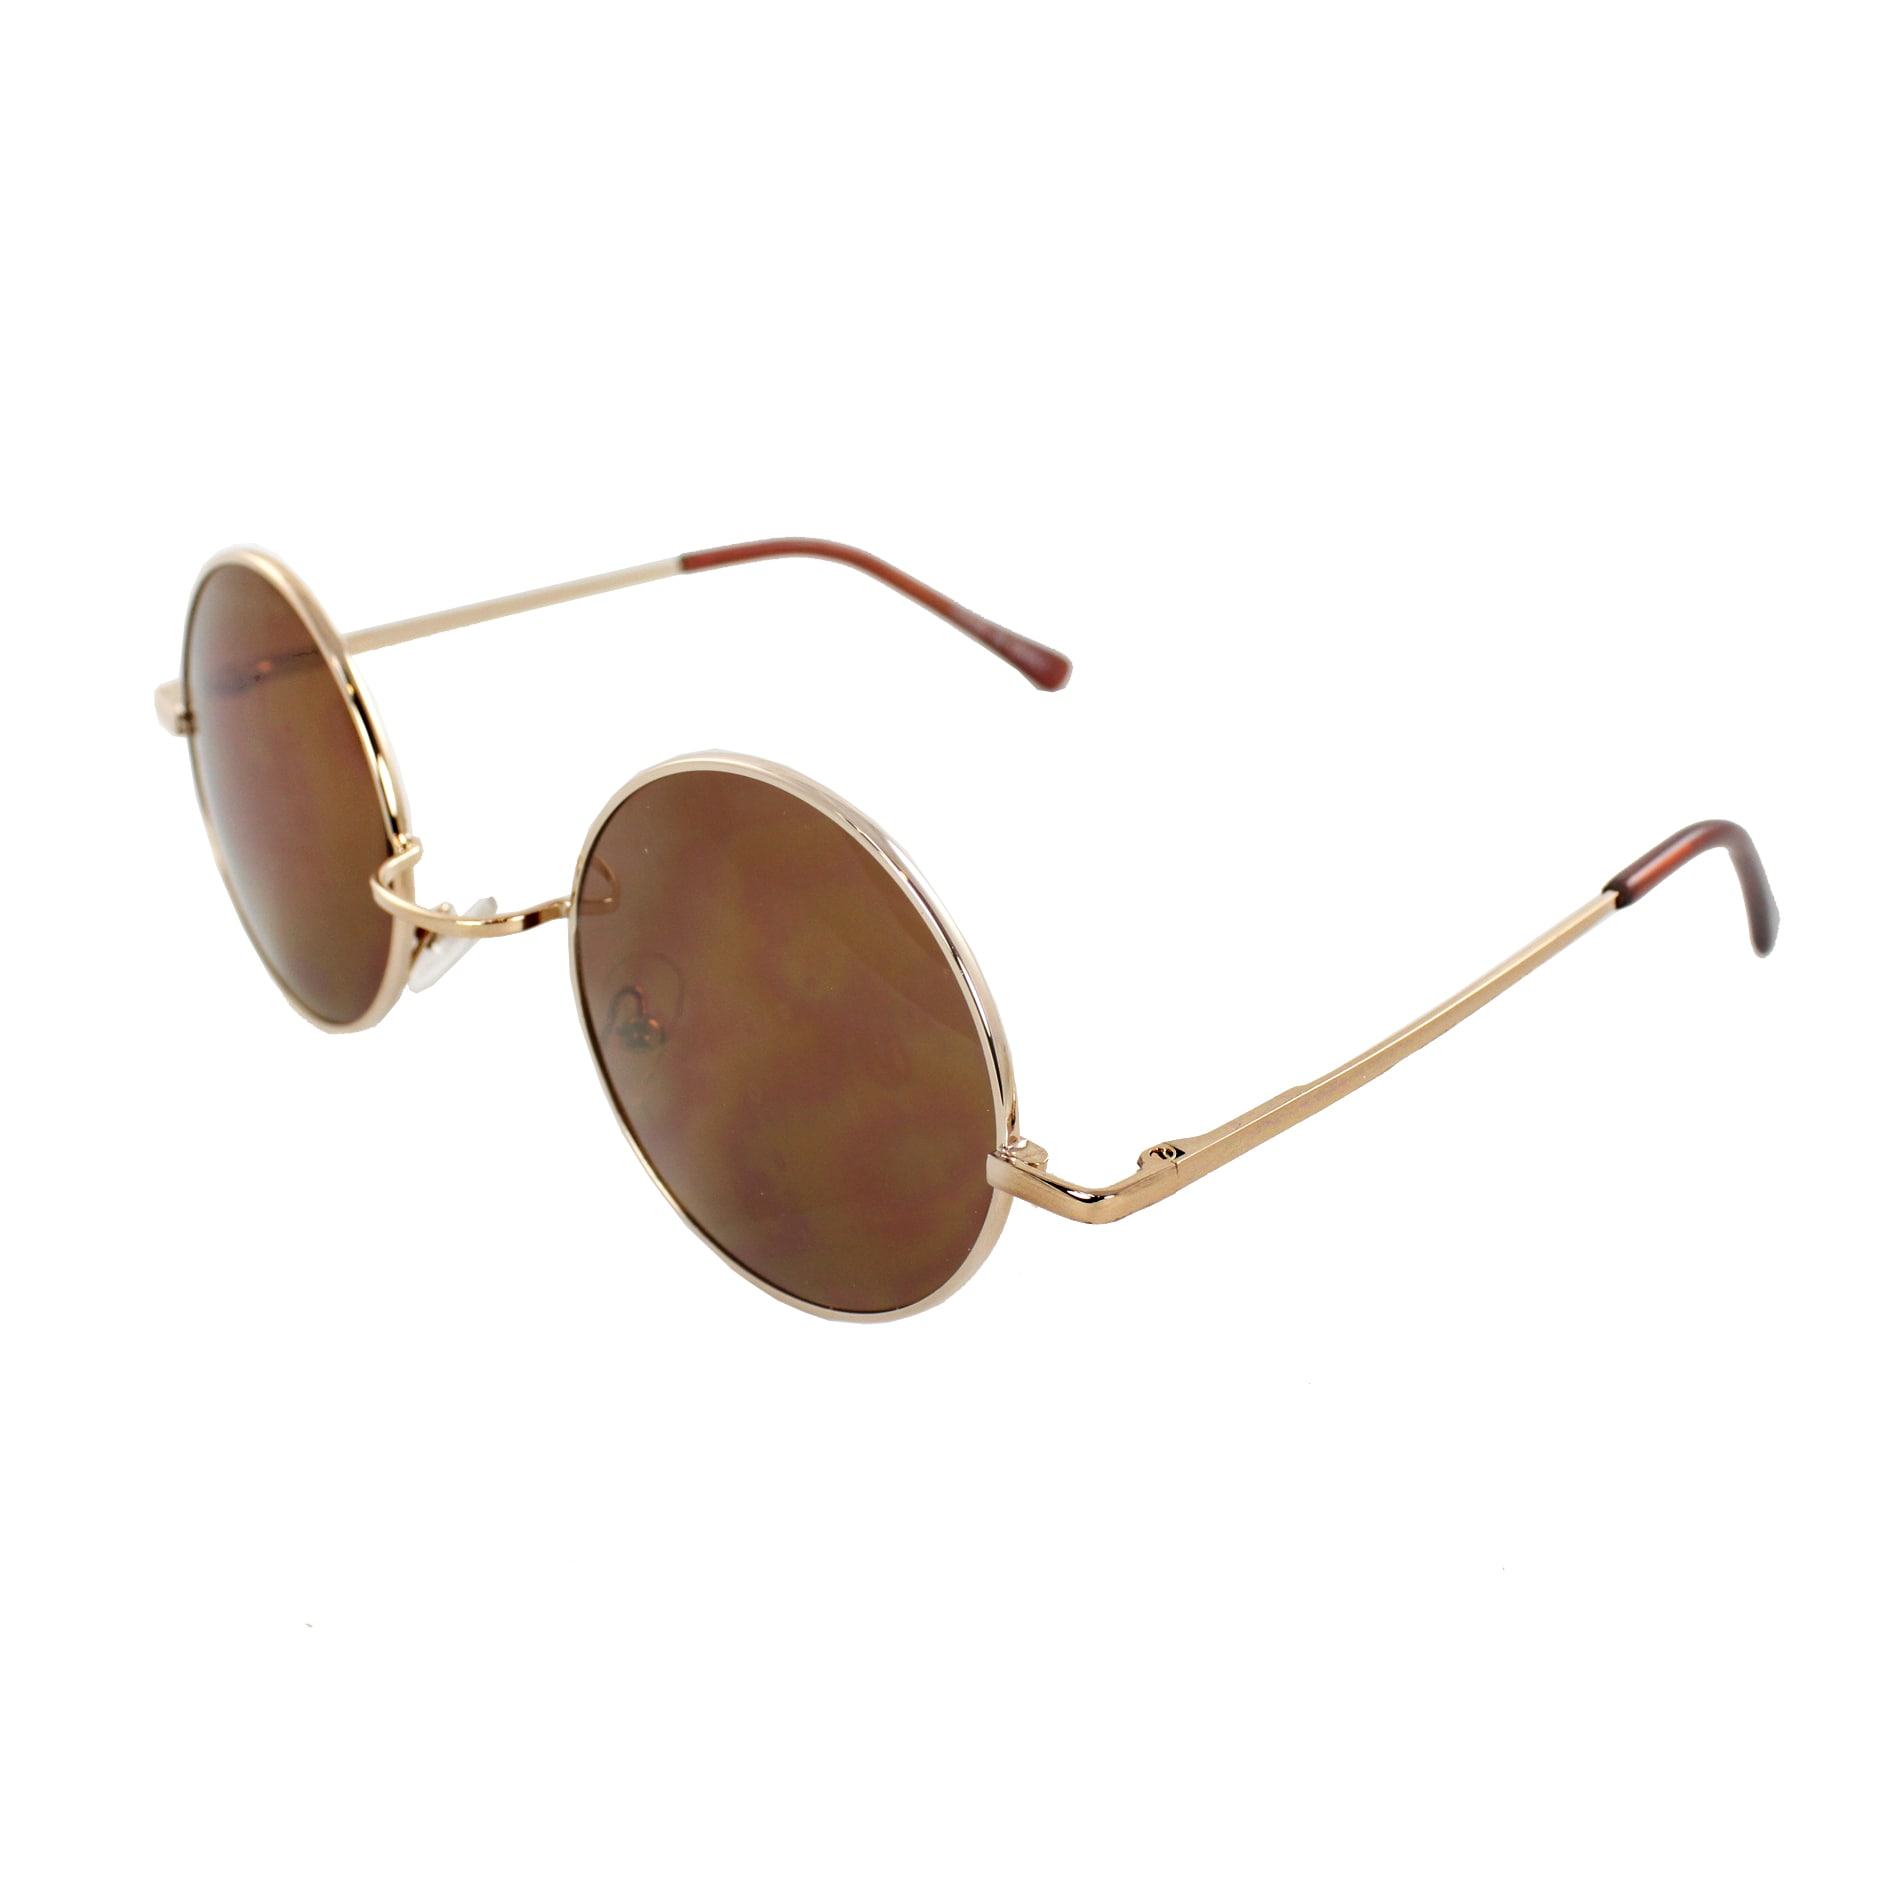 Retro Round Sunglasses Gold Frame and Brown Lenses for Women and Men